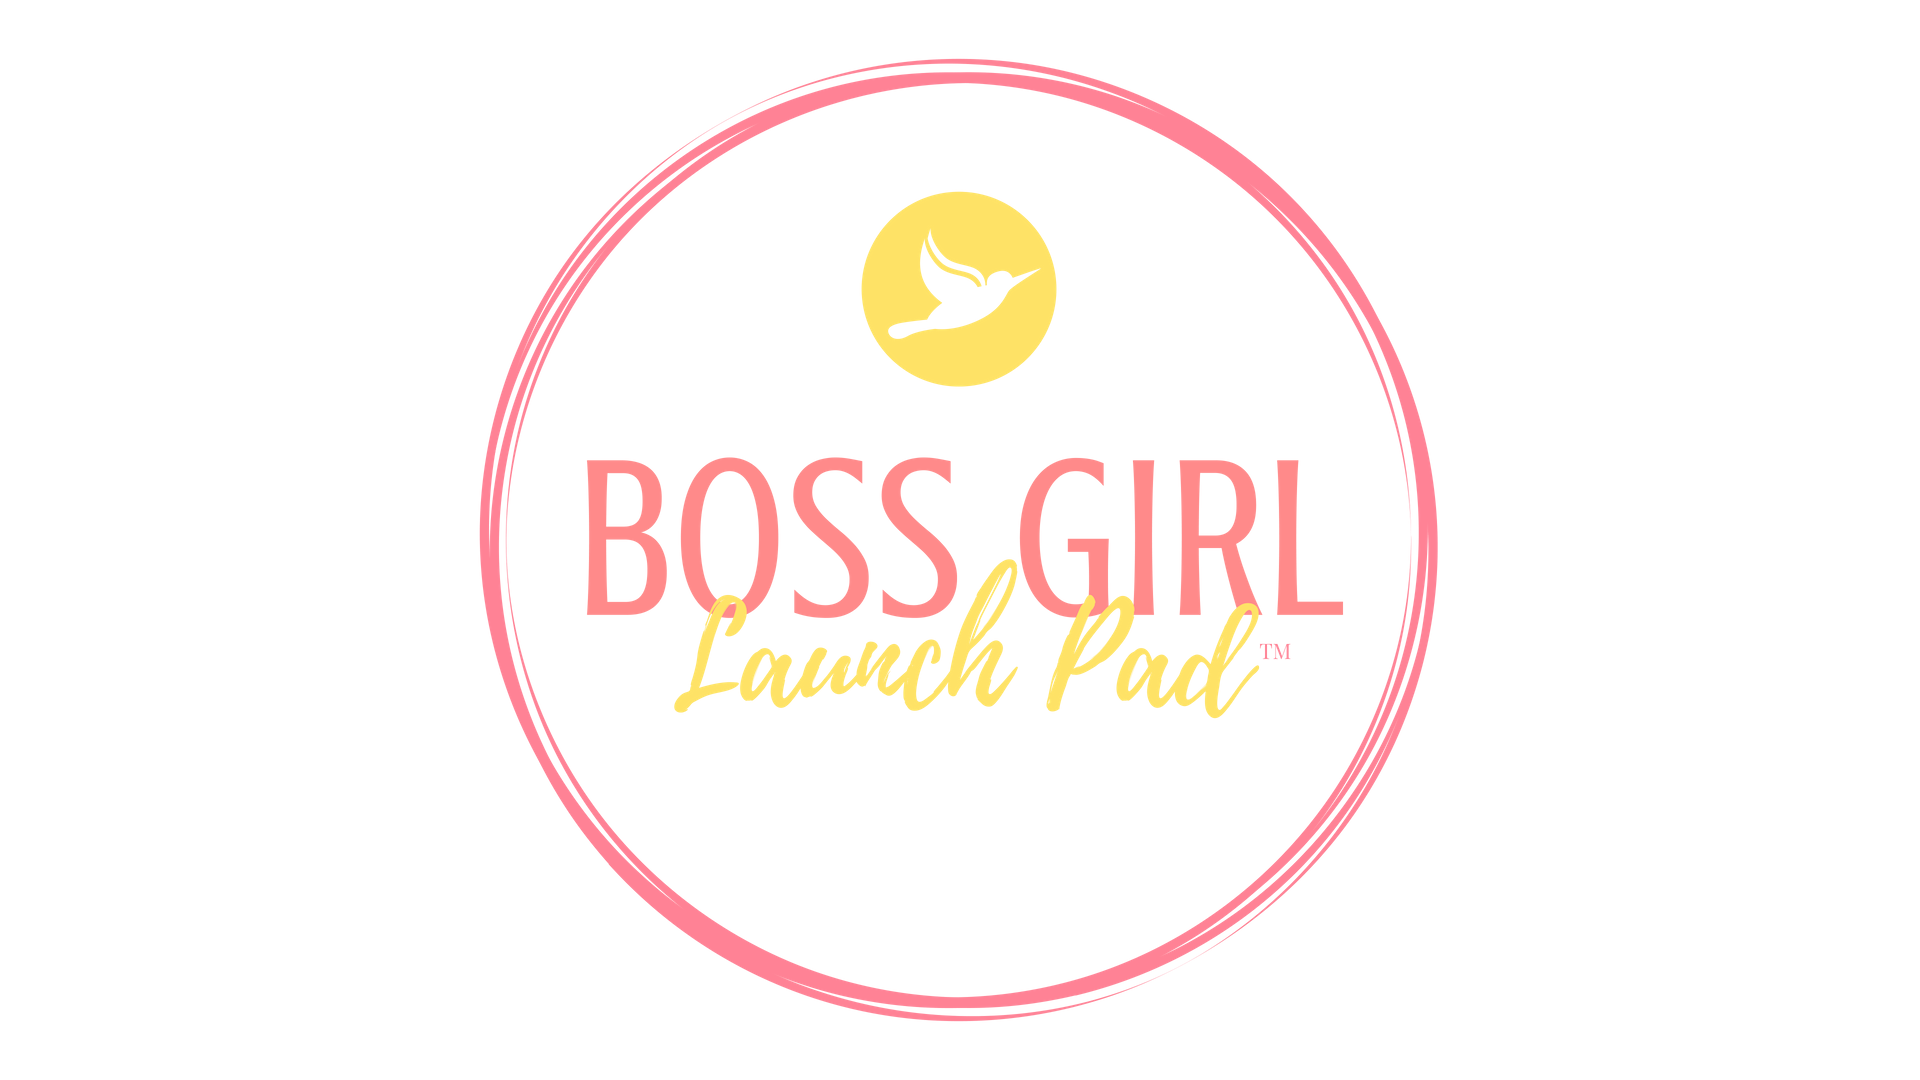 BOSS GIRL LAUNCH PAD TRANS LARGE (3).png